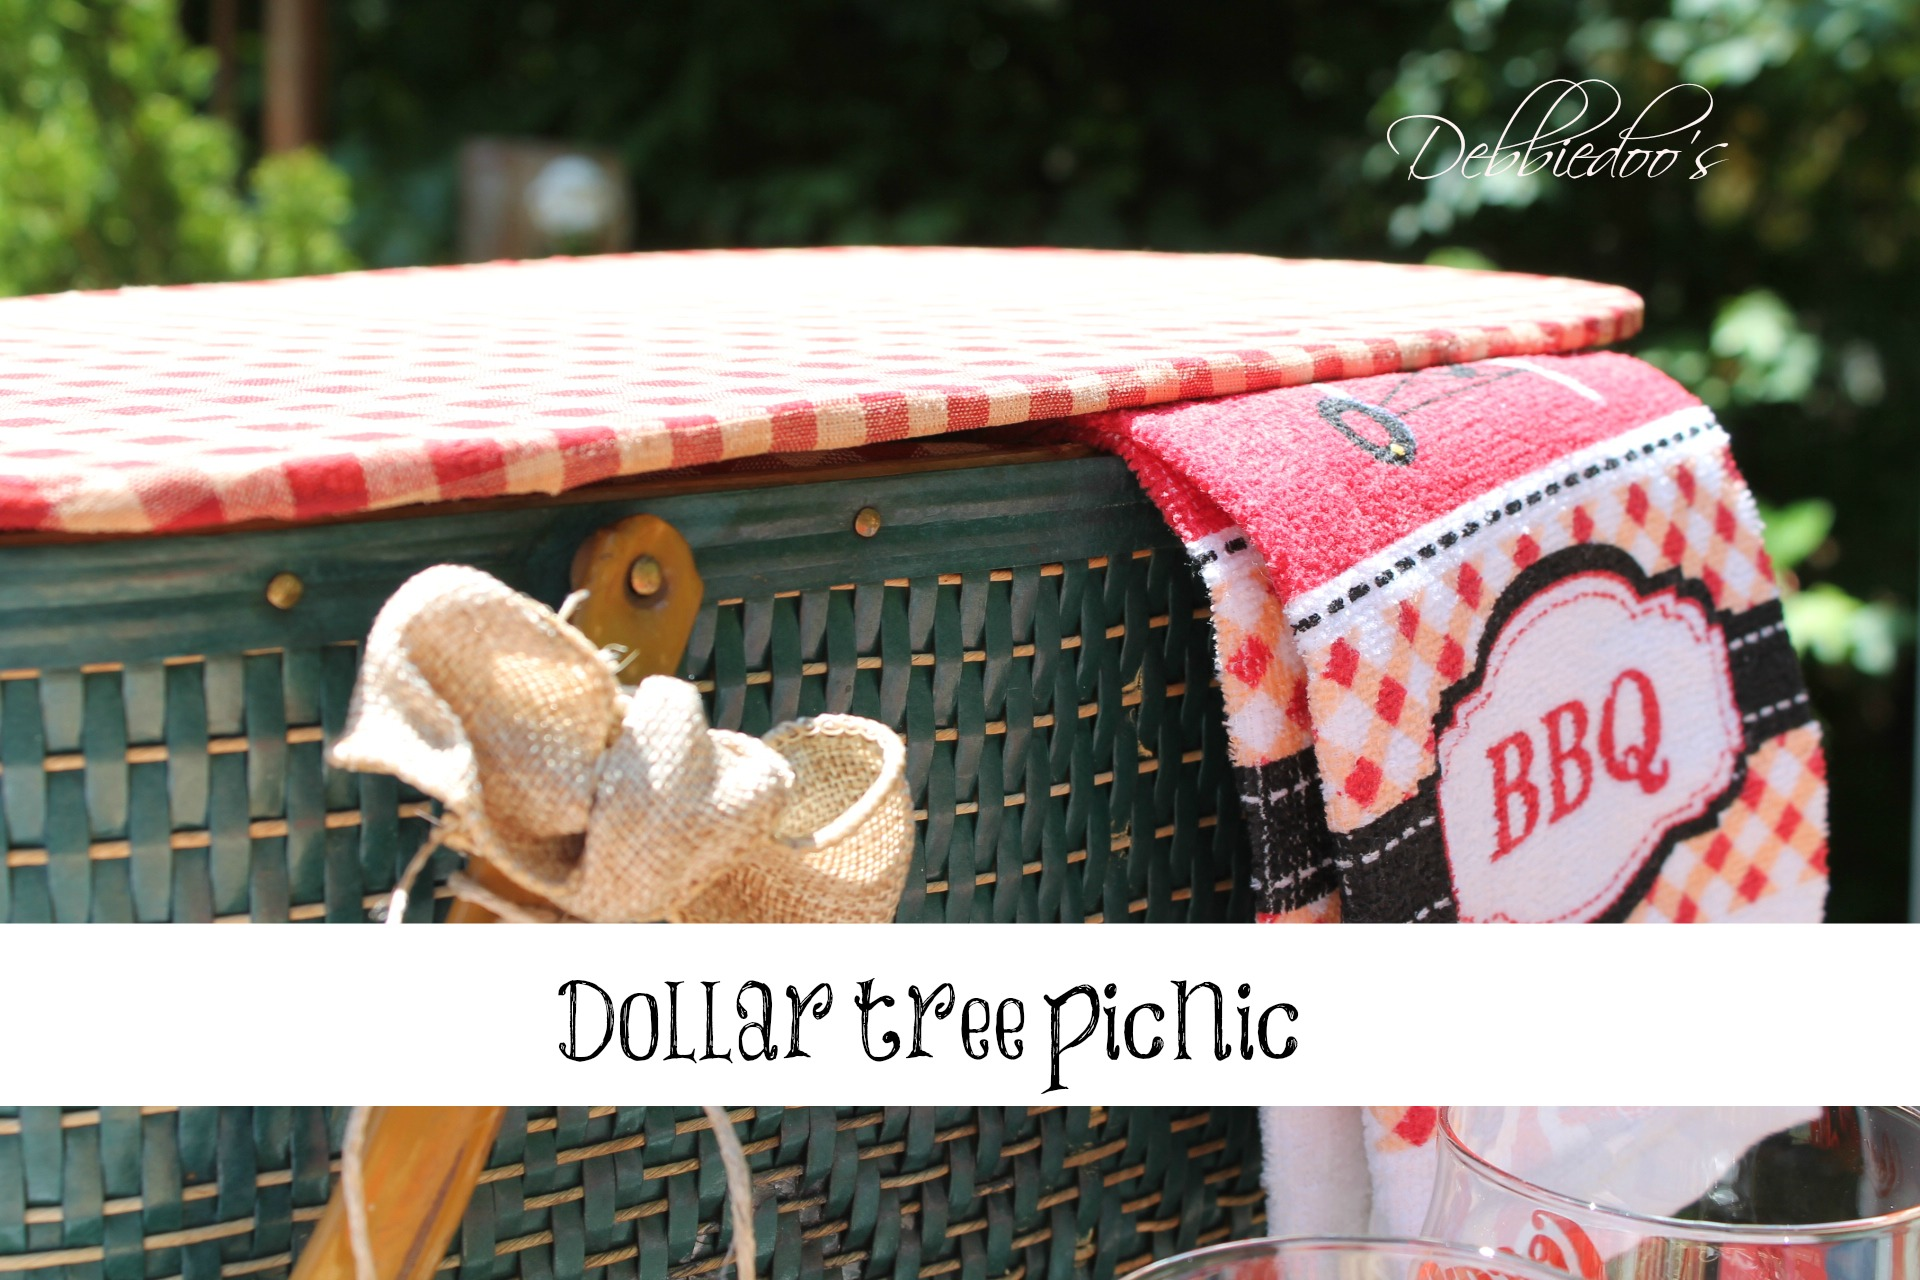 picnic on the patio with a repurposed vintage picnic basket and dollar tree